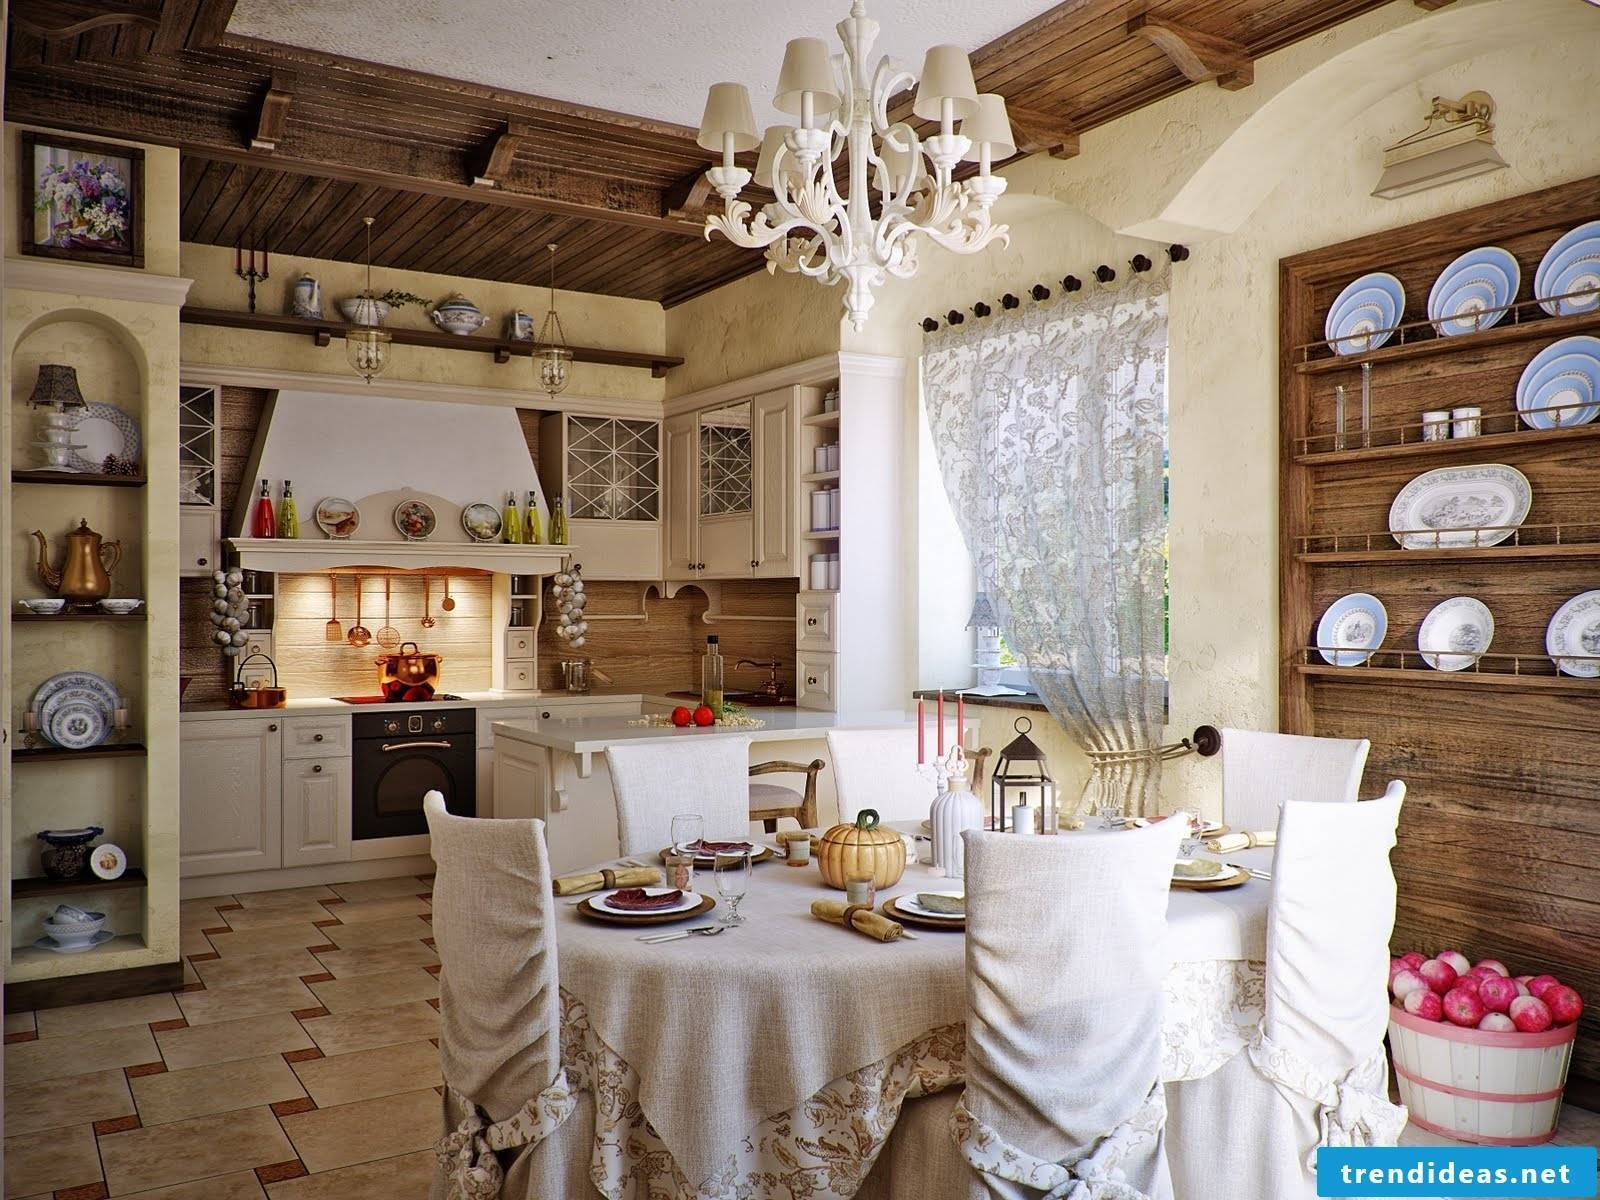 living ideas from france for the kitchen